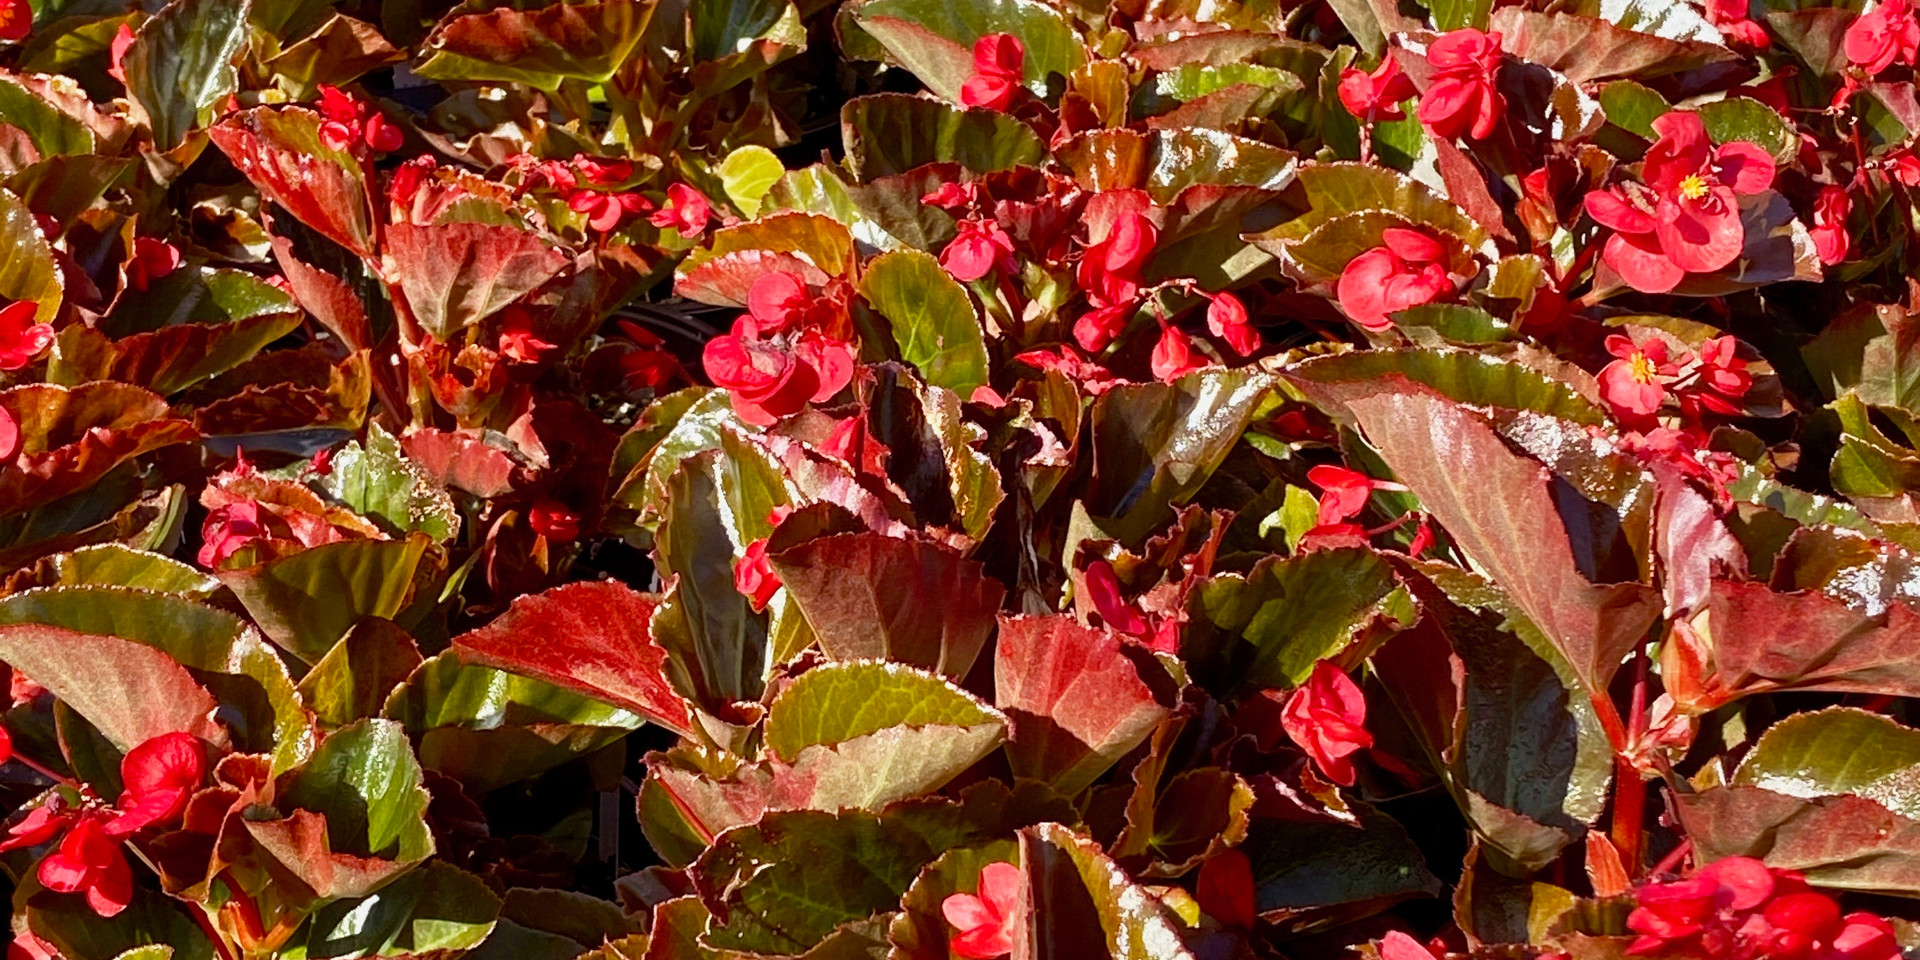 Lots of lovely Big Red or Big Pink begonias - very low maintenance!